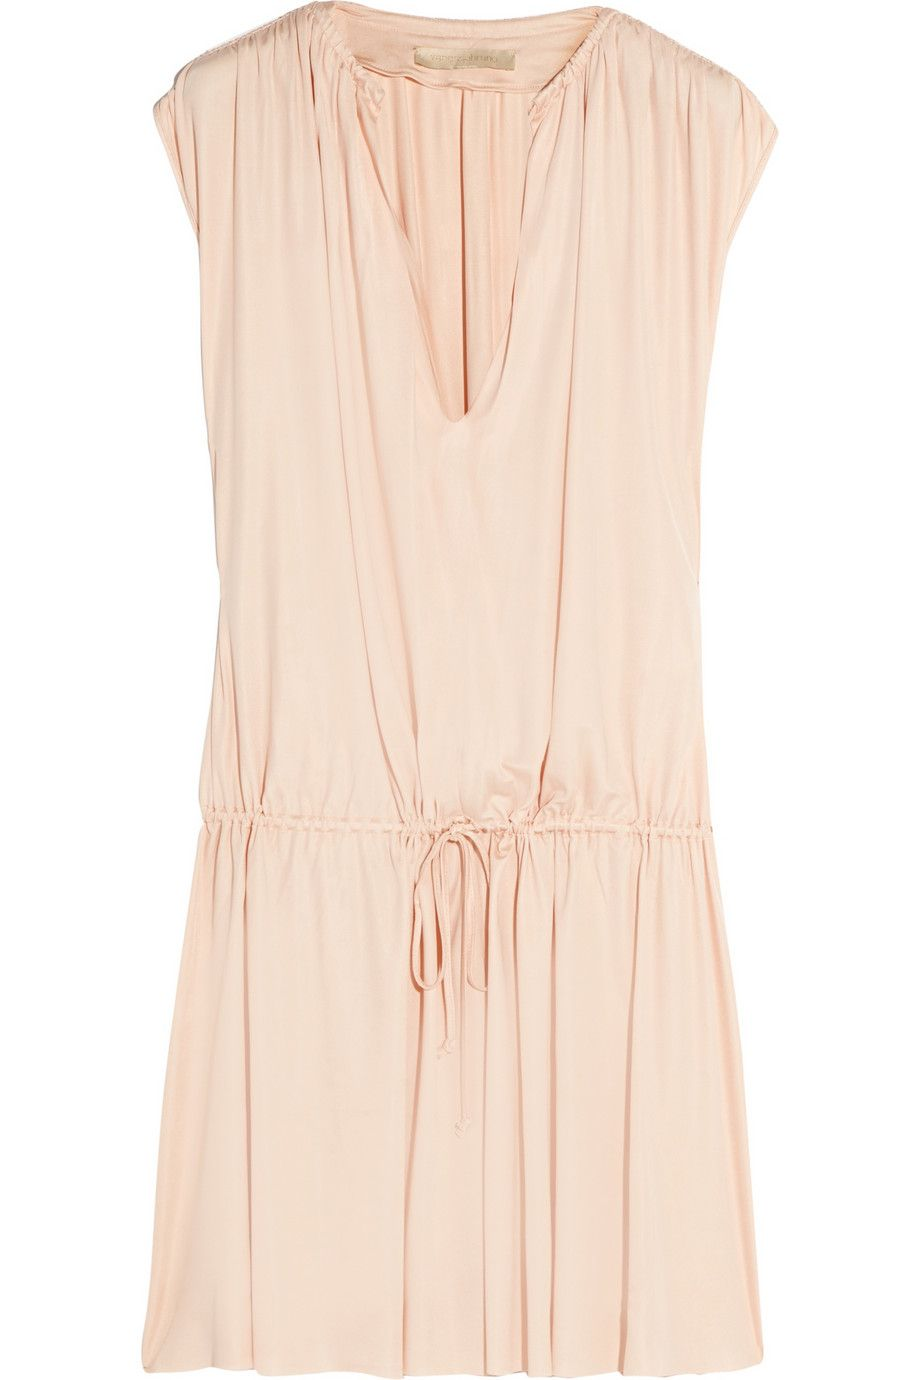 Vanessa Bruno | Cyclades pleated jersey dress | NET-A-PORTER.COM